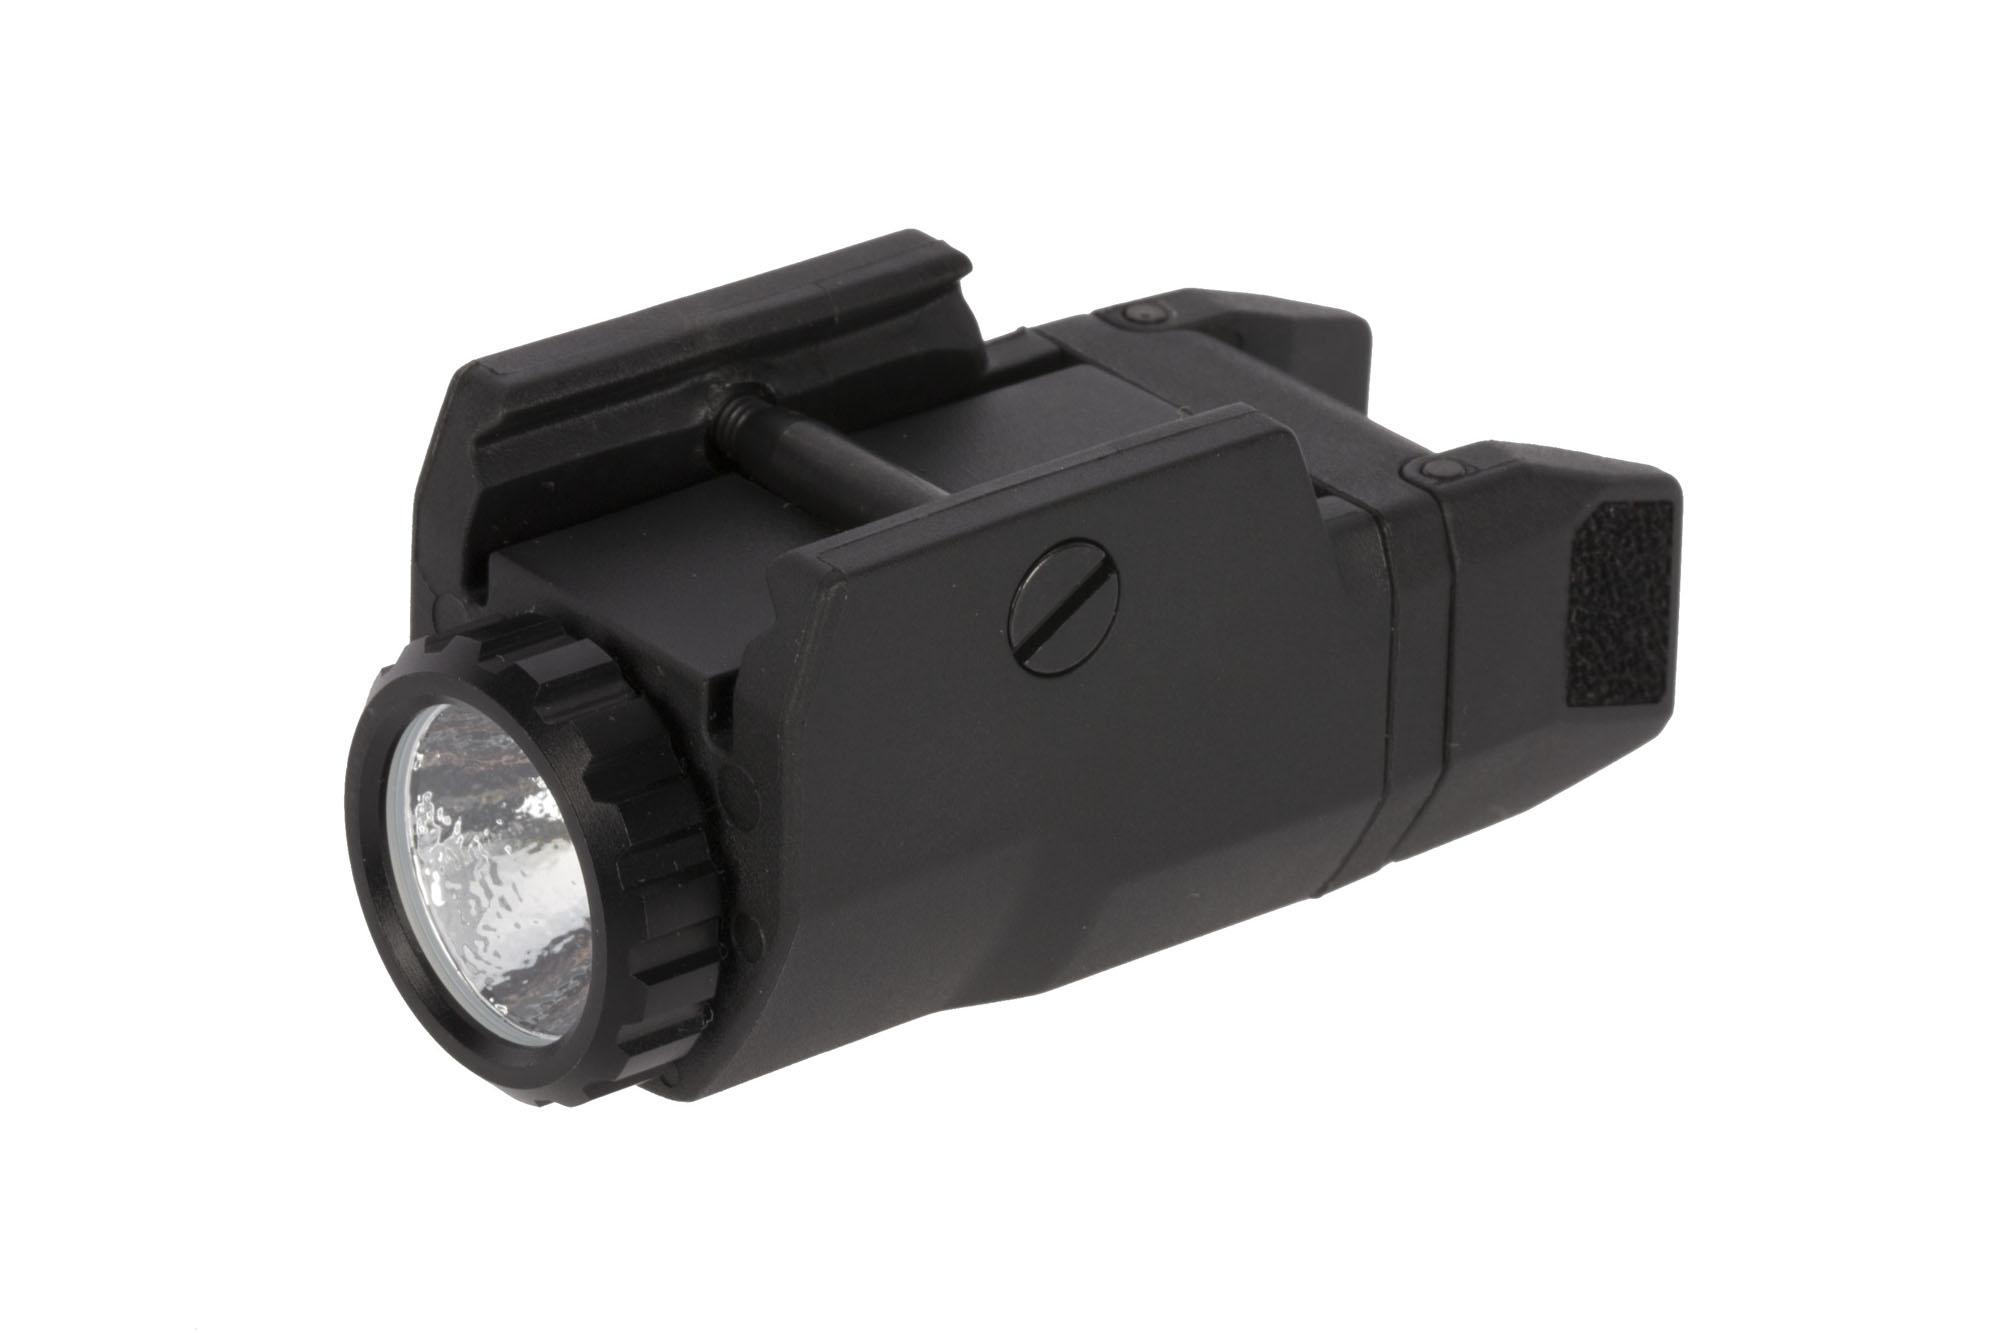 This Inforce pistol light features ambidextrous textured activation switches that are easy to reach